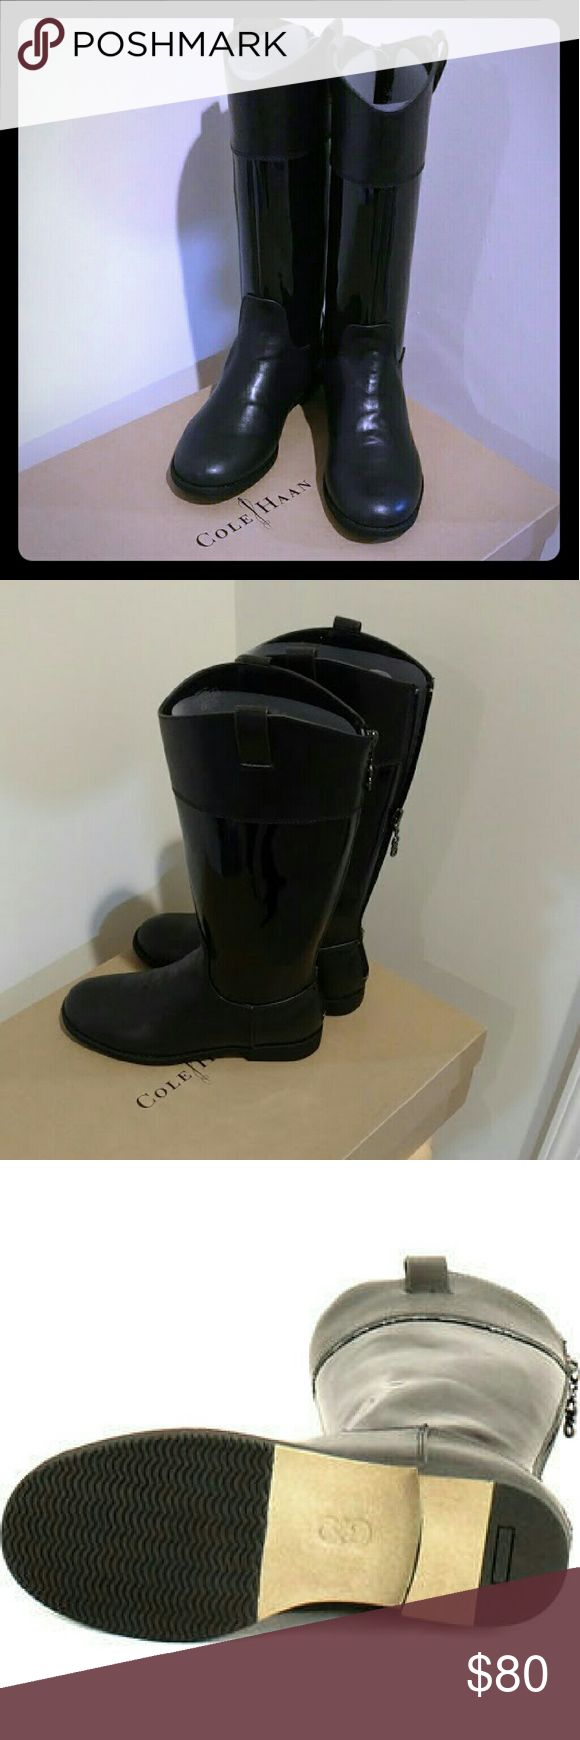 Cole Haan Girls Junior Nancy Tall Fall Riding Boot BRAND NEW  Black, leather and patent leather accent tall Fashion Riding Boots Cole Haan Shoes Boots